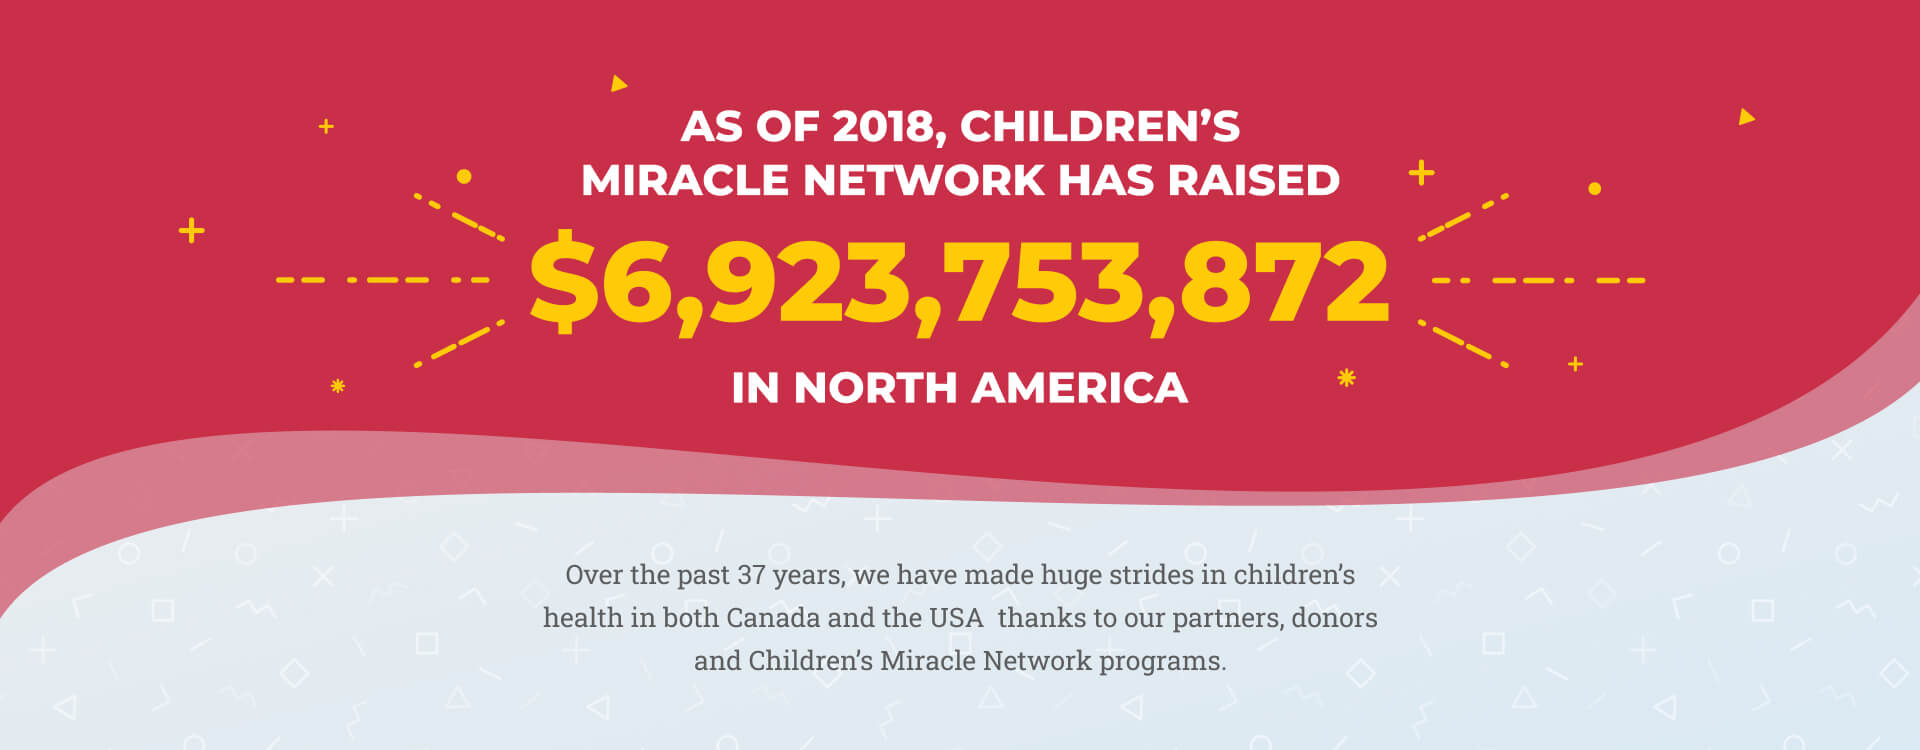 Slide 7 - As of 2018, Children's Miracle Network has raised $6,923,753,872 in North America. Over the past 37 years, we have made huge strides in children's health in both Canada and the USA thanks to our partners, donors and Children's Miracle Network programs.